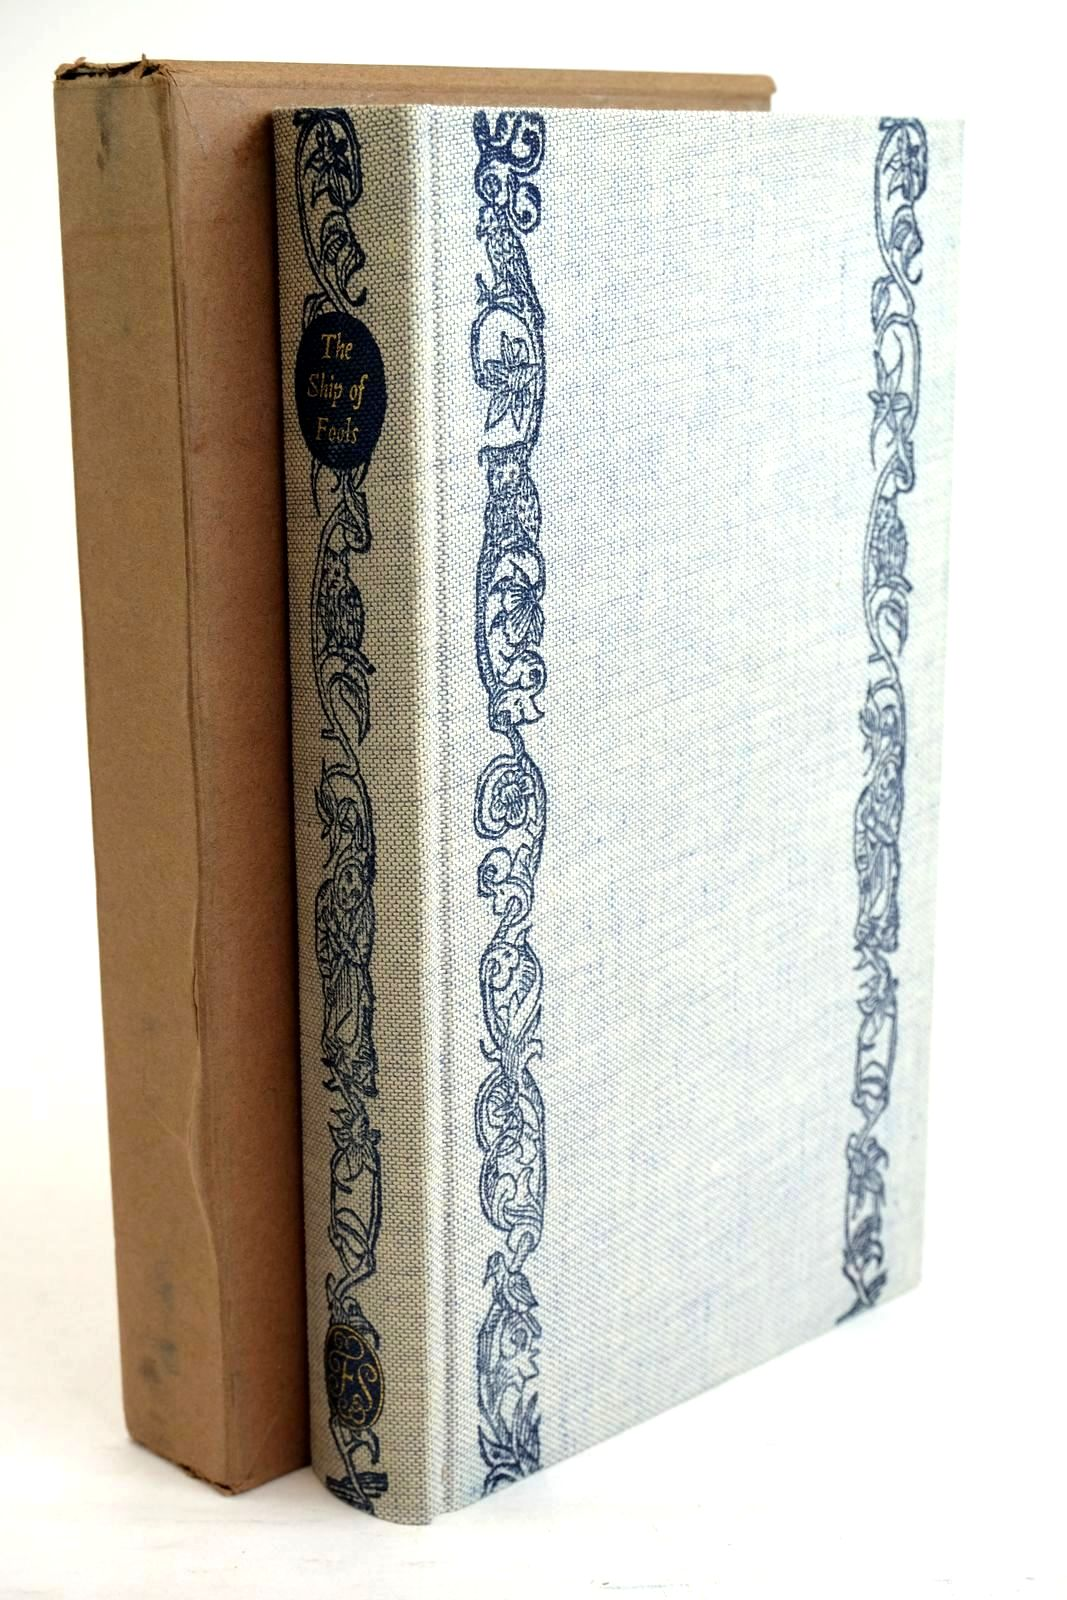 Photo of THE SHIP OF FOOLS written by Brant, Sebastian published by Folio Society (STOCK CODE: 1320578)  for sale by Stella & Rose's Books